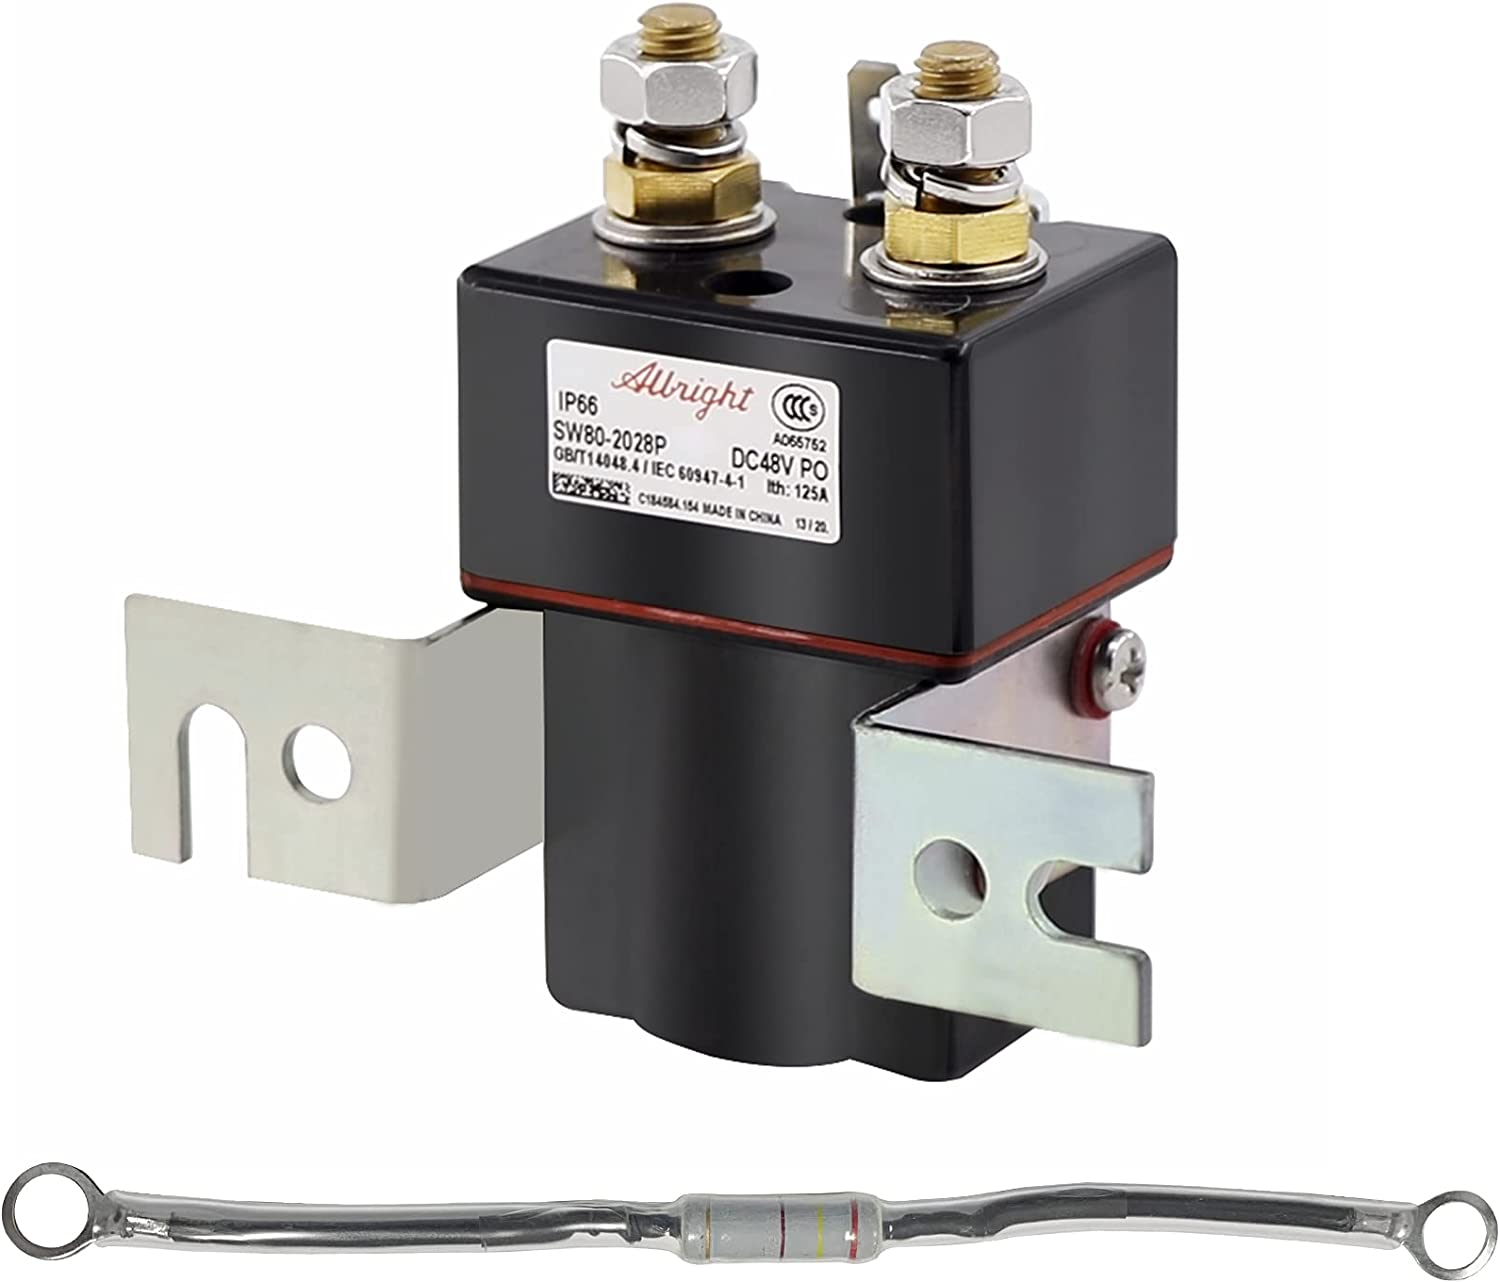 Golf Cart Solenoid 48V 4 Soleno Terminal Long Beach Mall Coil Sale SALE% OFF Albright